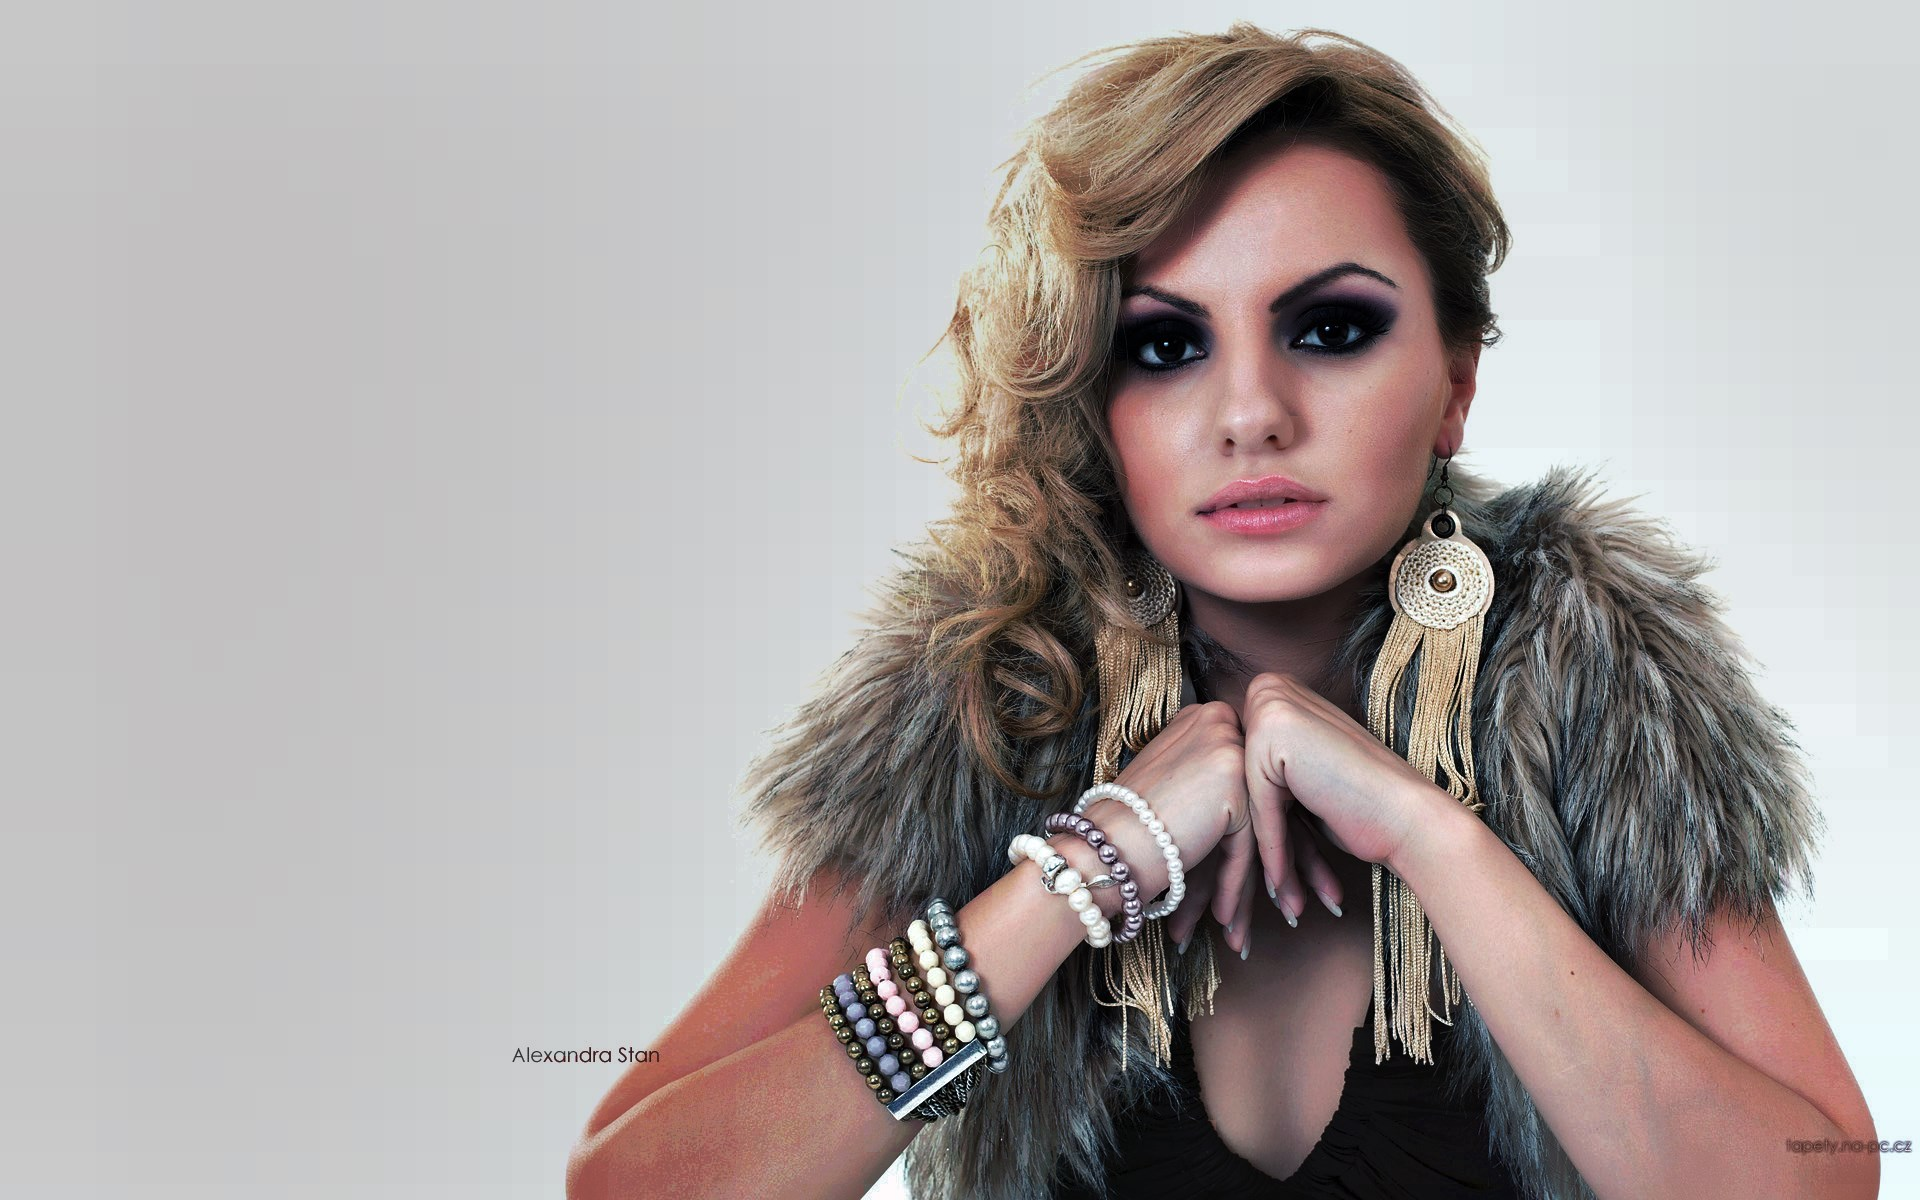 Alexandra stan known people famous people news and biographies altavistaventures Choice Image